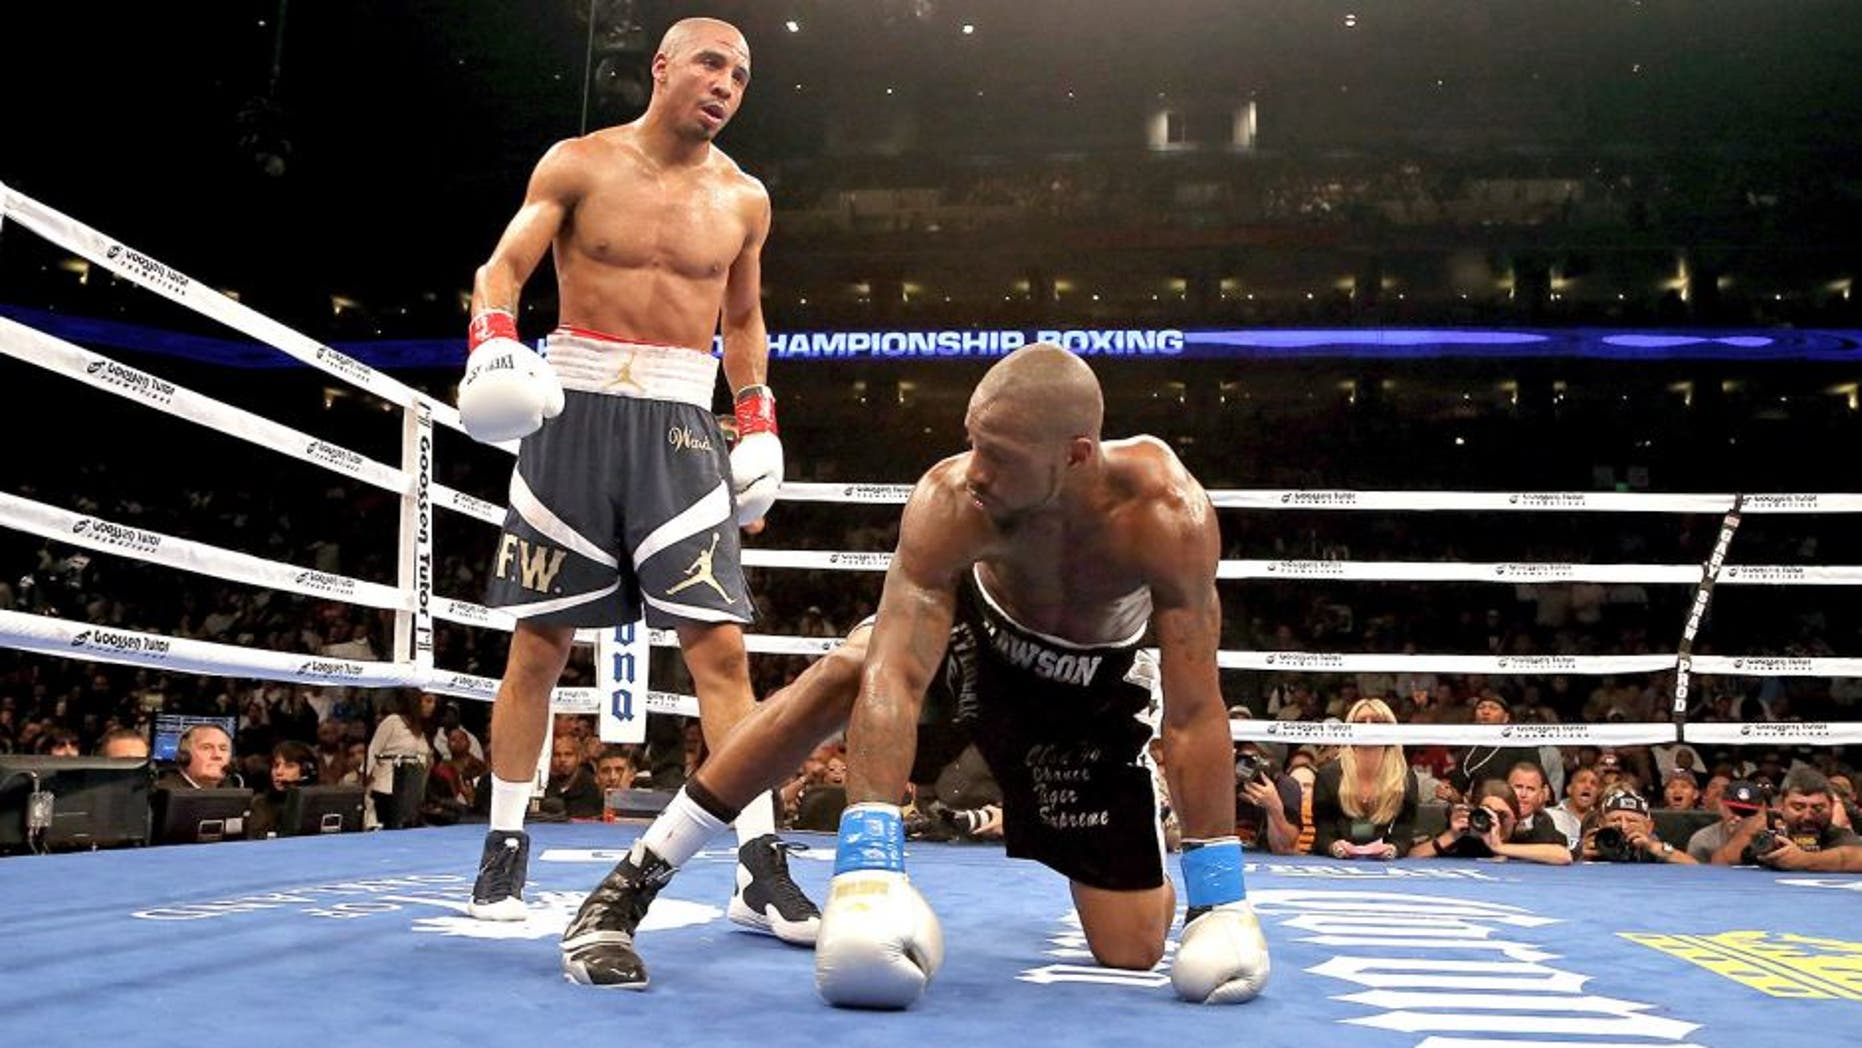 OAKLAND, CA - SEPTEMBER 08: Andre Ward (L) stands over Chad Dawson after he knocked him down in the third round of their WBA/WBC Super Middleweight championship fight at ORACLE Arena on September 8, 2012 in Oakland, California. Ward won by TKO in the 10th round. (Photo by Ezra Shaw/Getty Images)